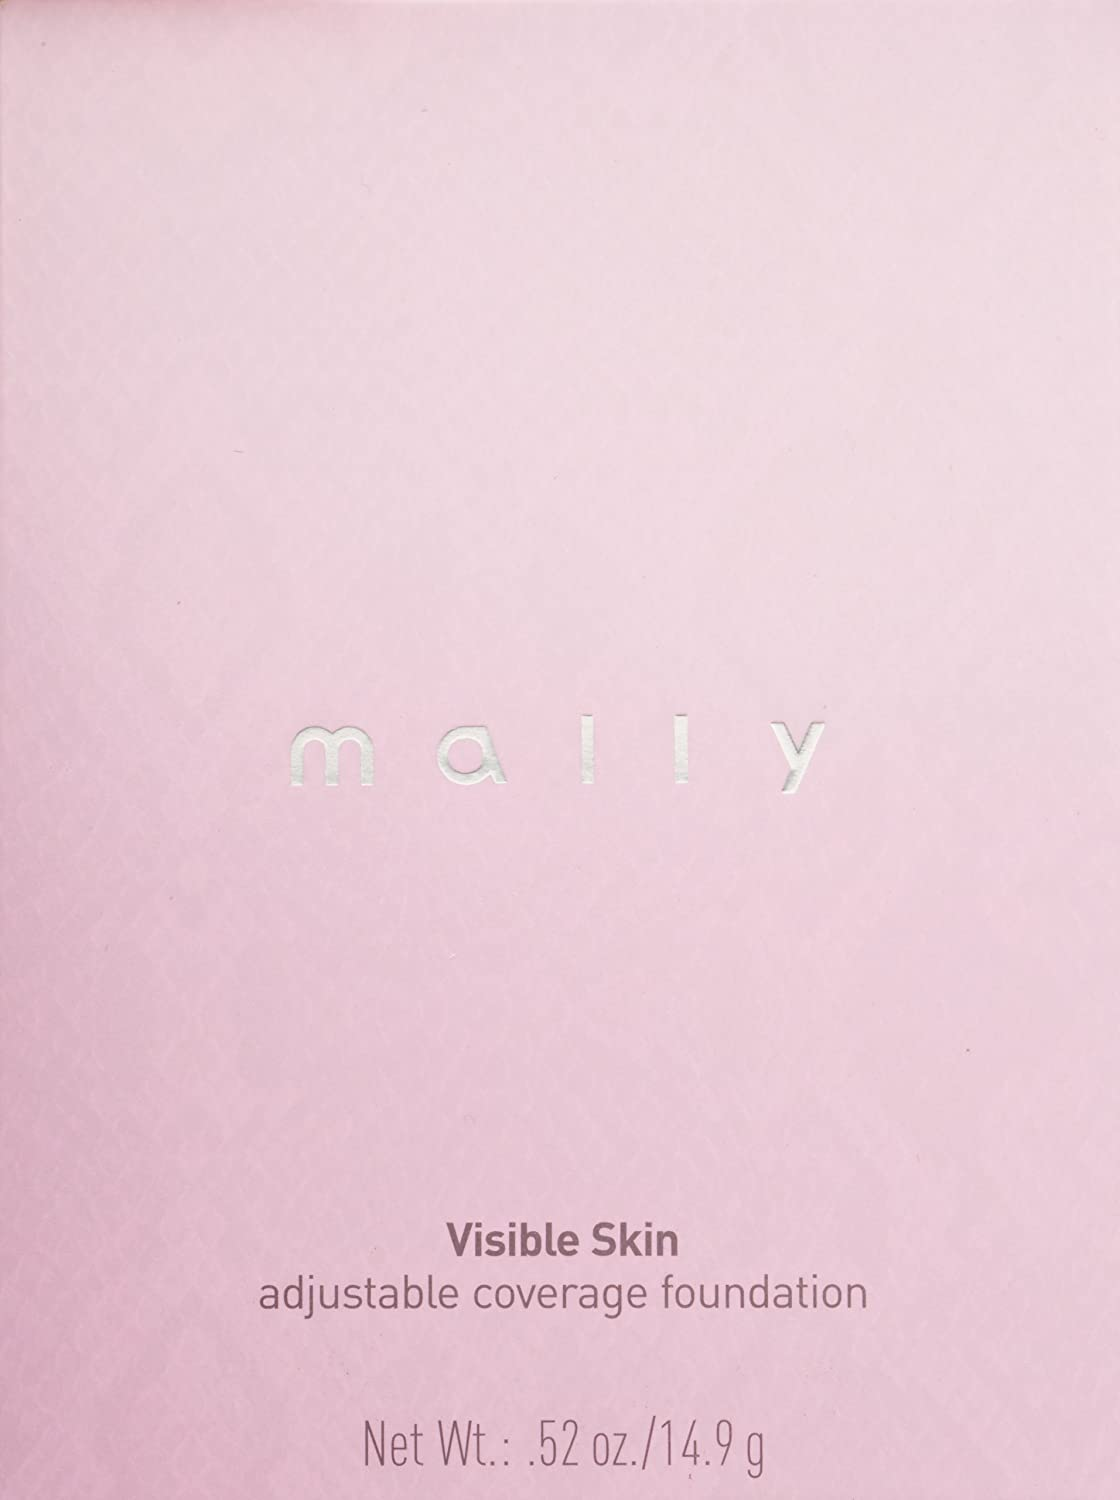 Visible Skin Adjustable by mally #4